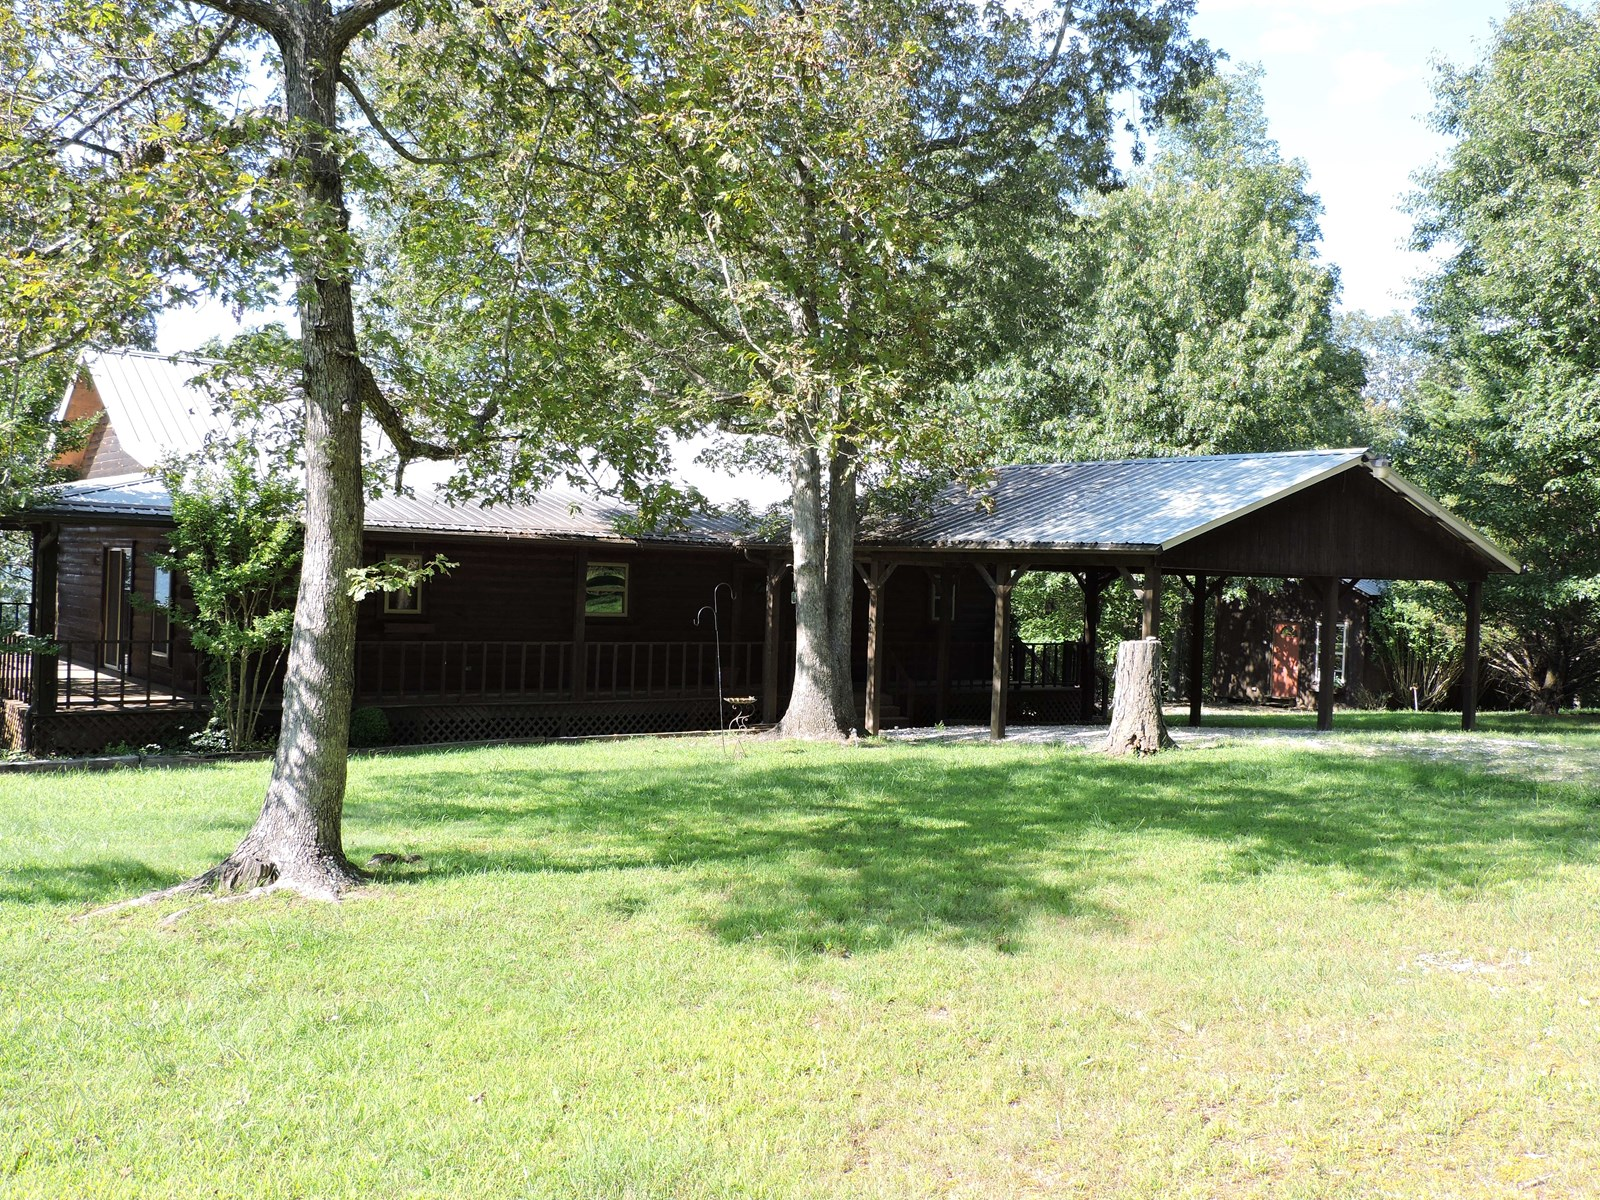 Mountaintop Log Cabin Home with acreage and Ozark Mtn Views